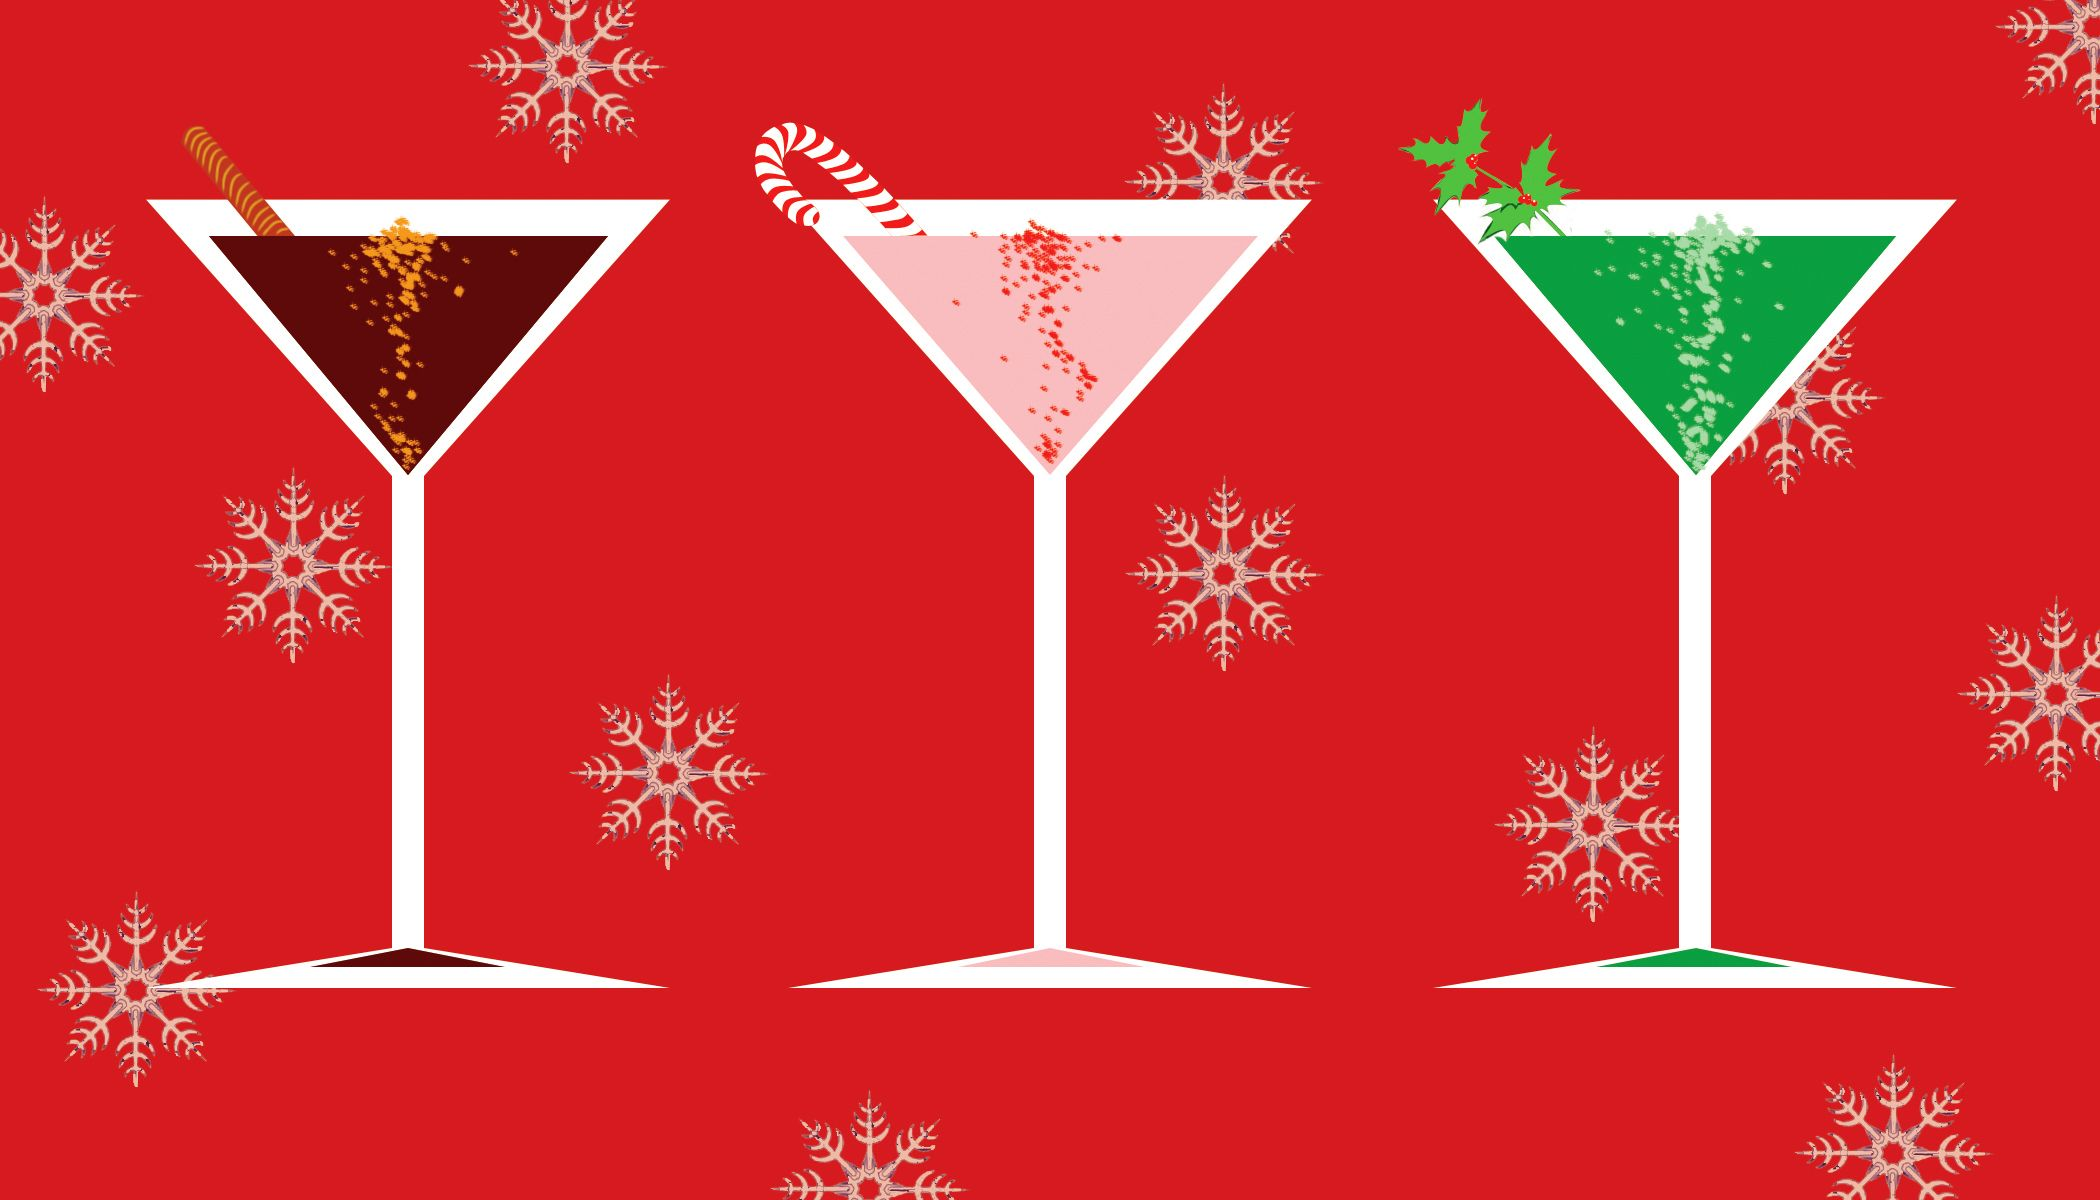 Christimas cocktail clipart graphic royalty free download 45 Awesome holiday cocktail party clipart   ClipArt   Holiday ... graphic royalty free download